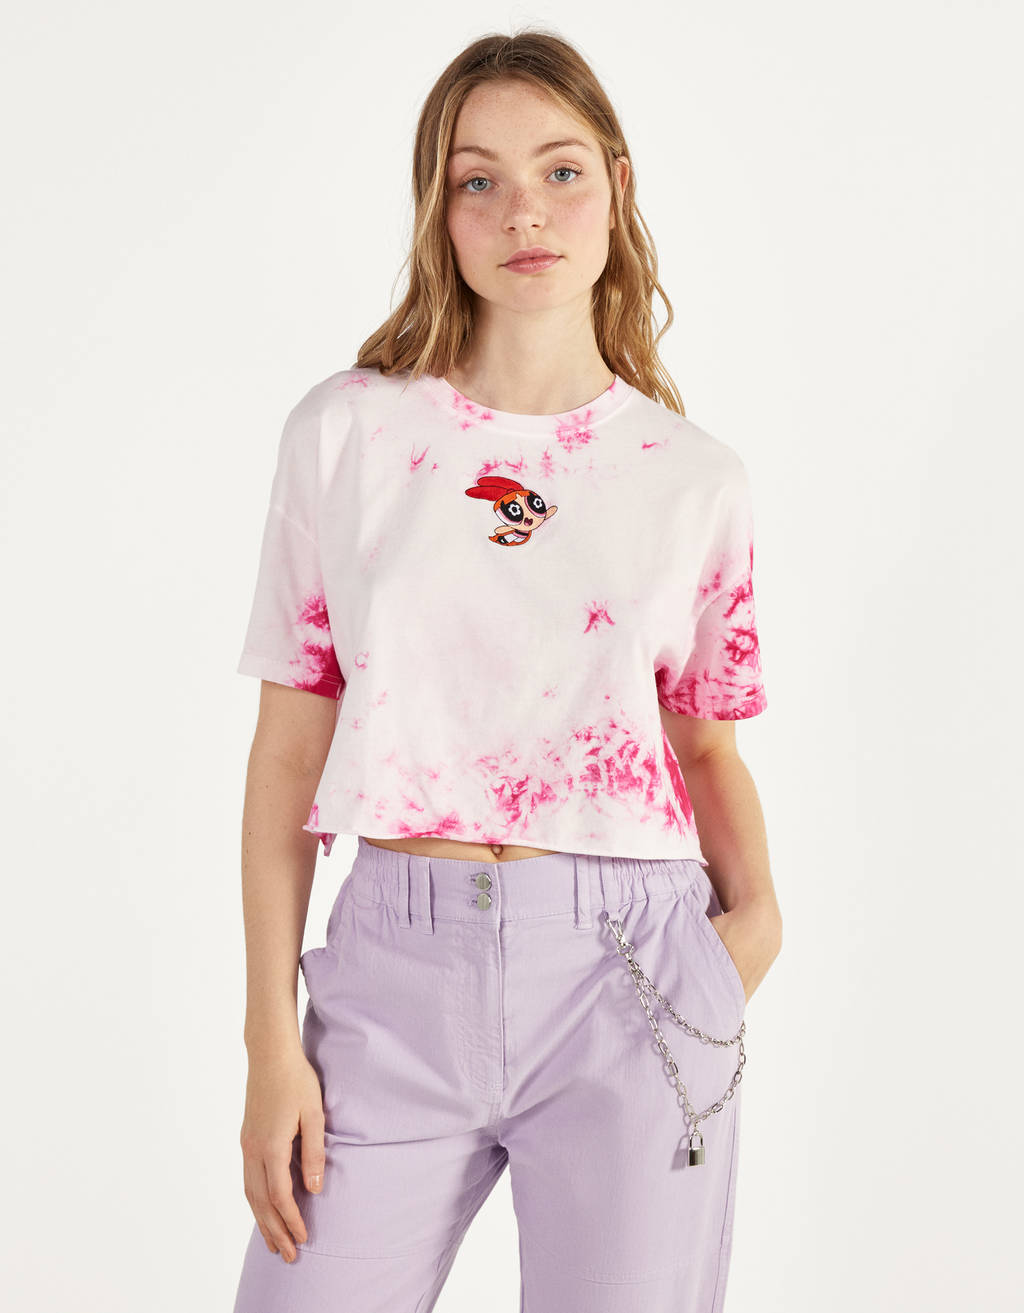 Μπλούζα tie dye The Powerpuff Girls x Bershka